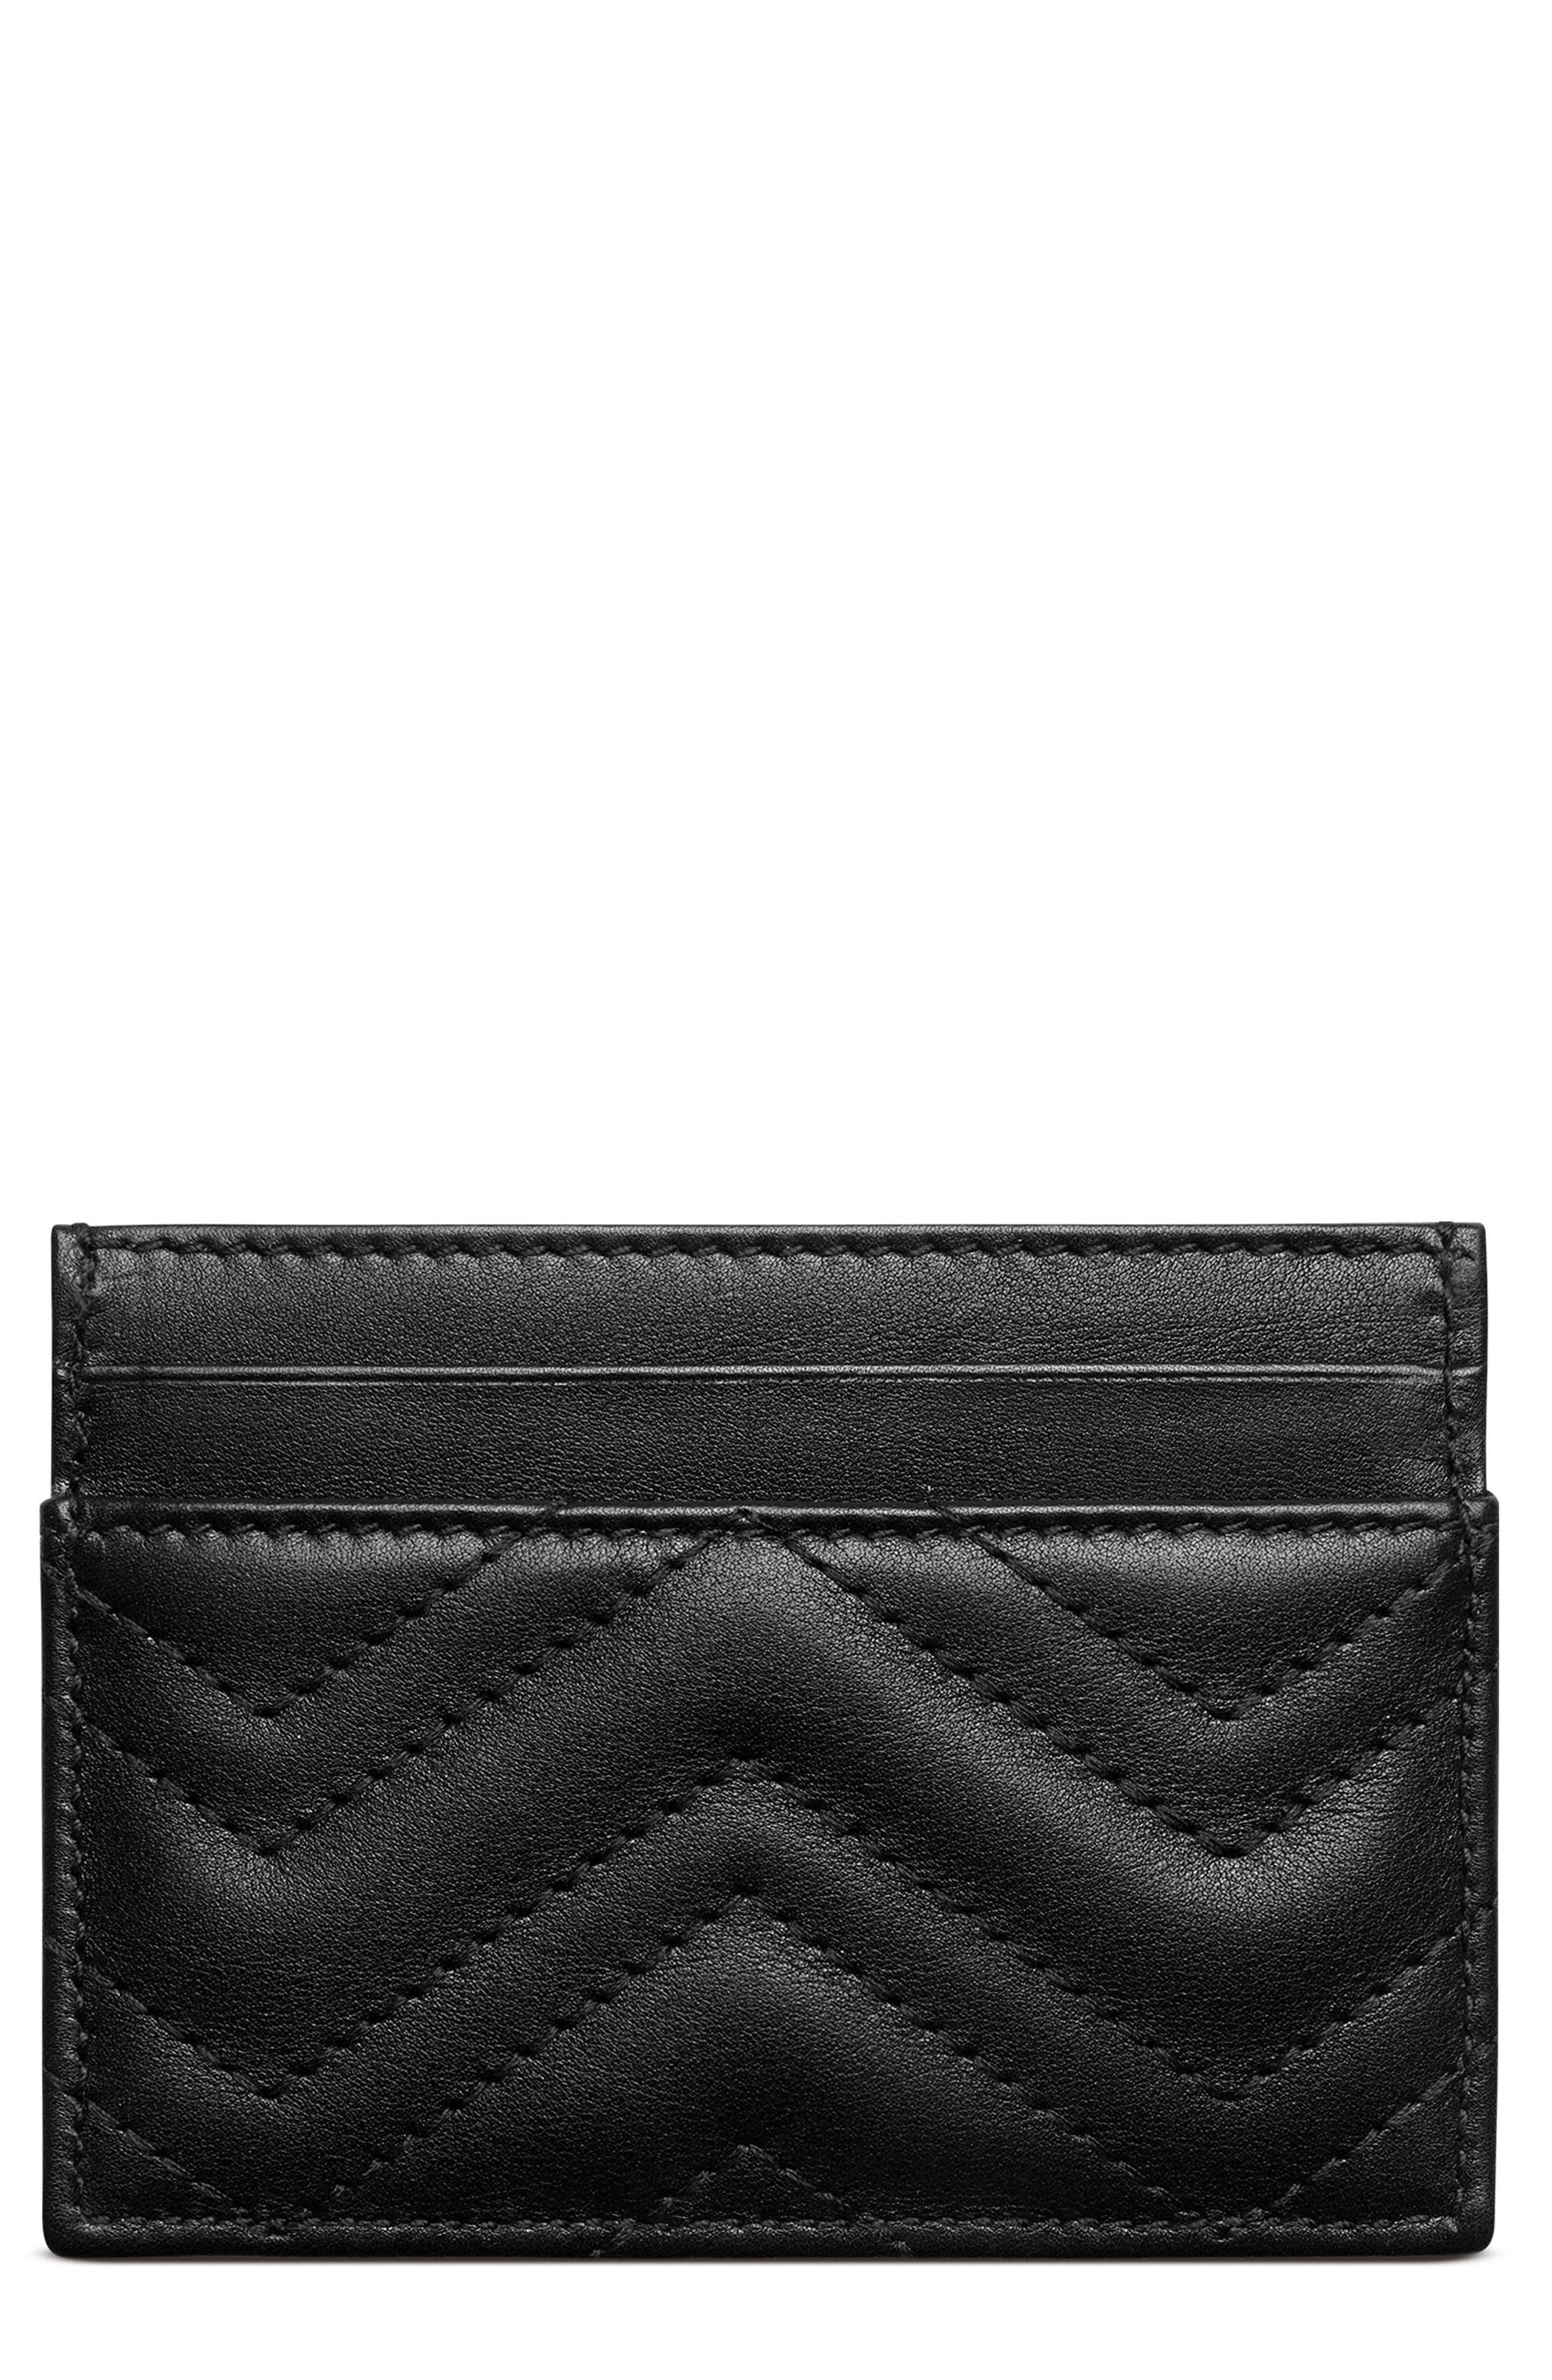 Gucci Wallets & Card Cases for Women | Nordstrom